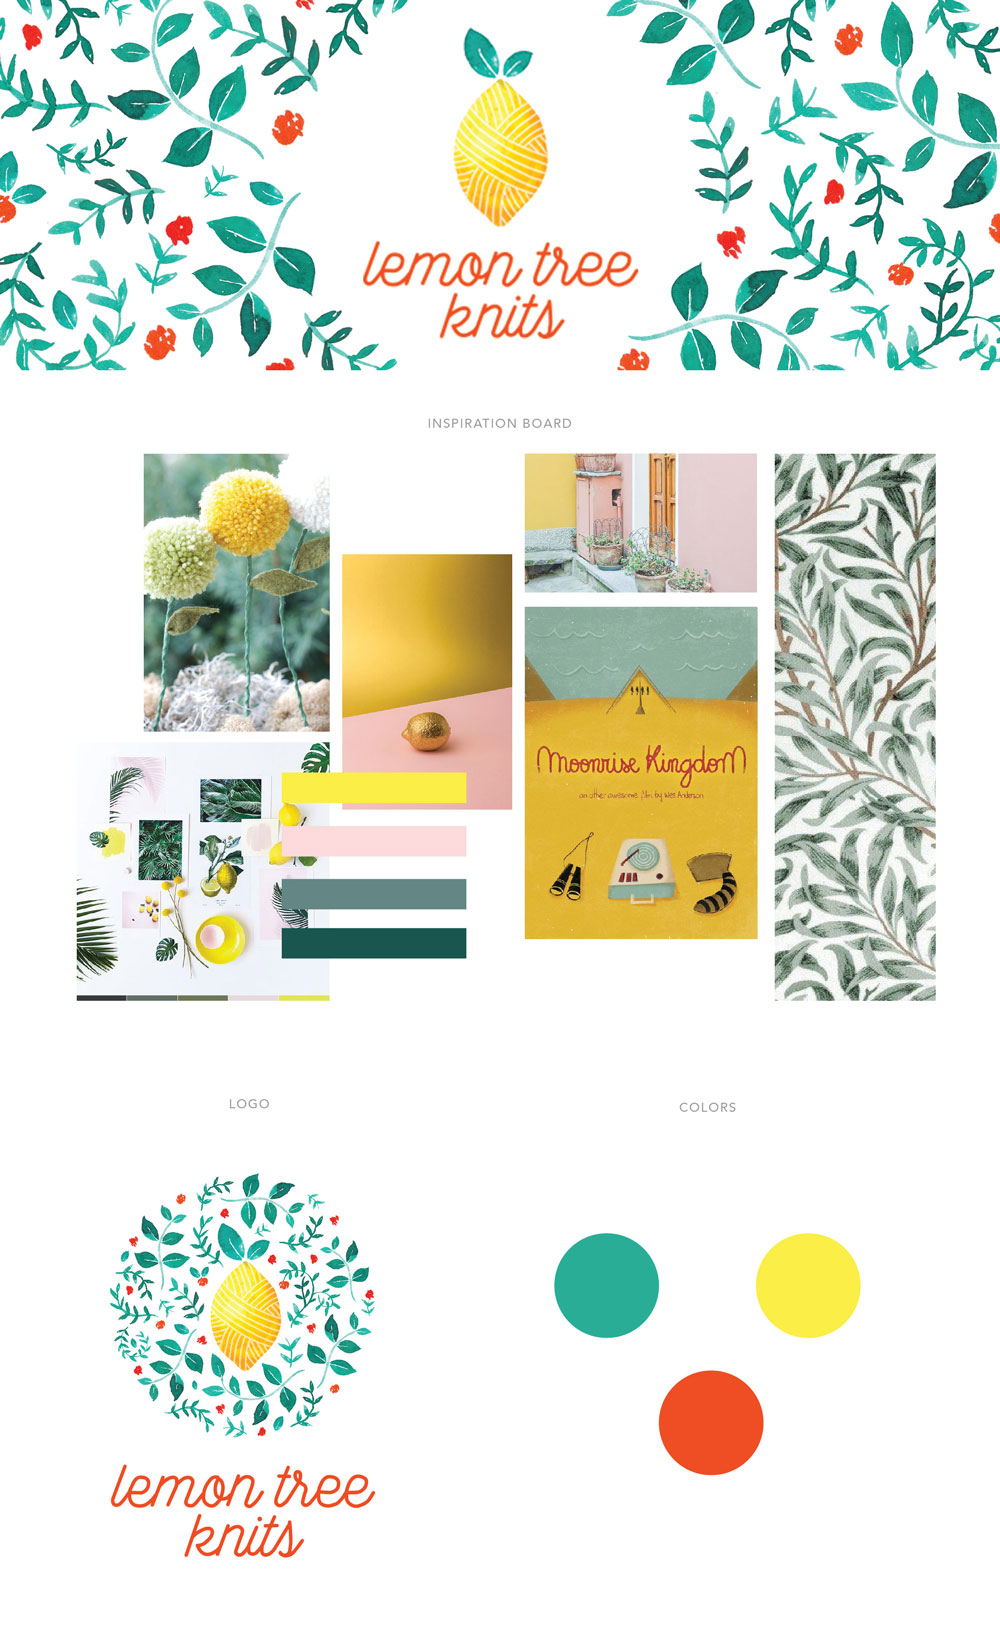 Illustrated-branding-for-small-brand-watercolor-logo.jpg